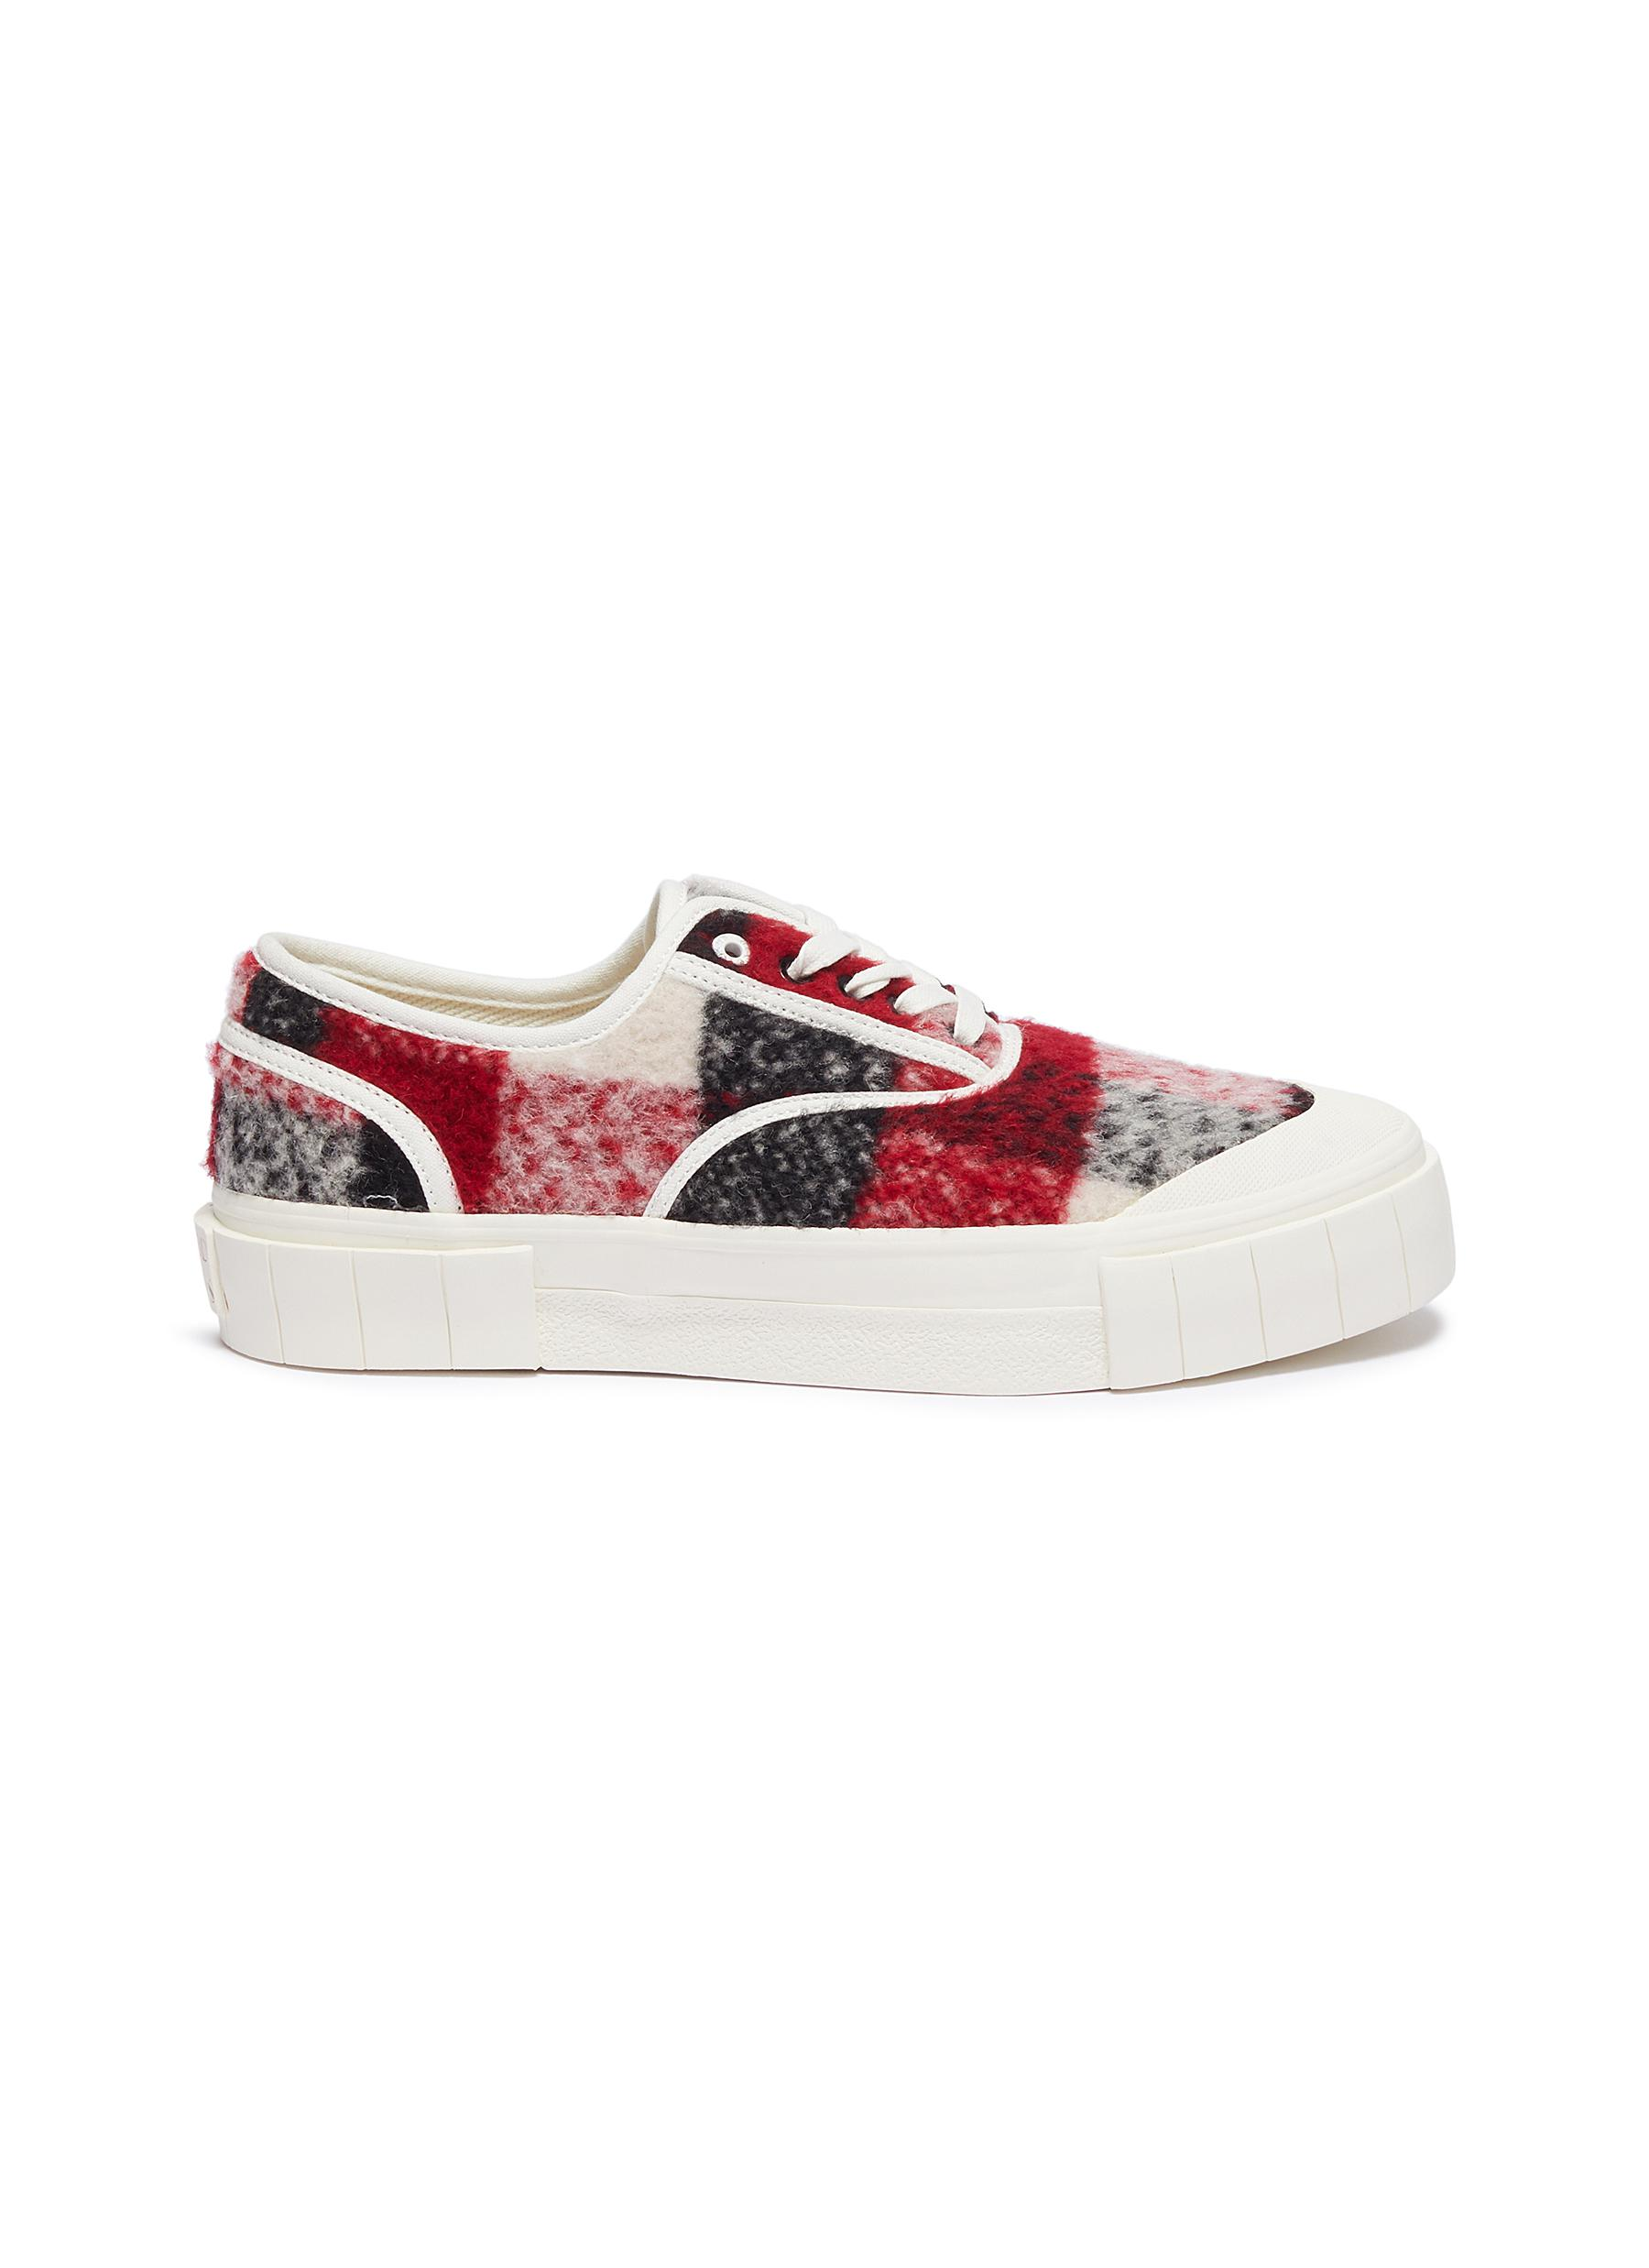 Softball 2 checkered wool sneakers by Good News